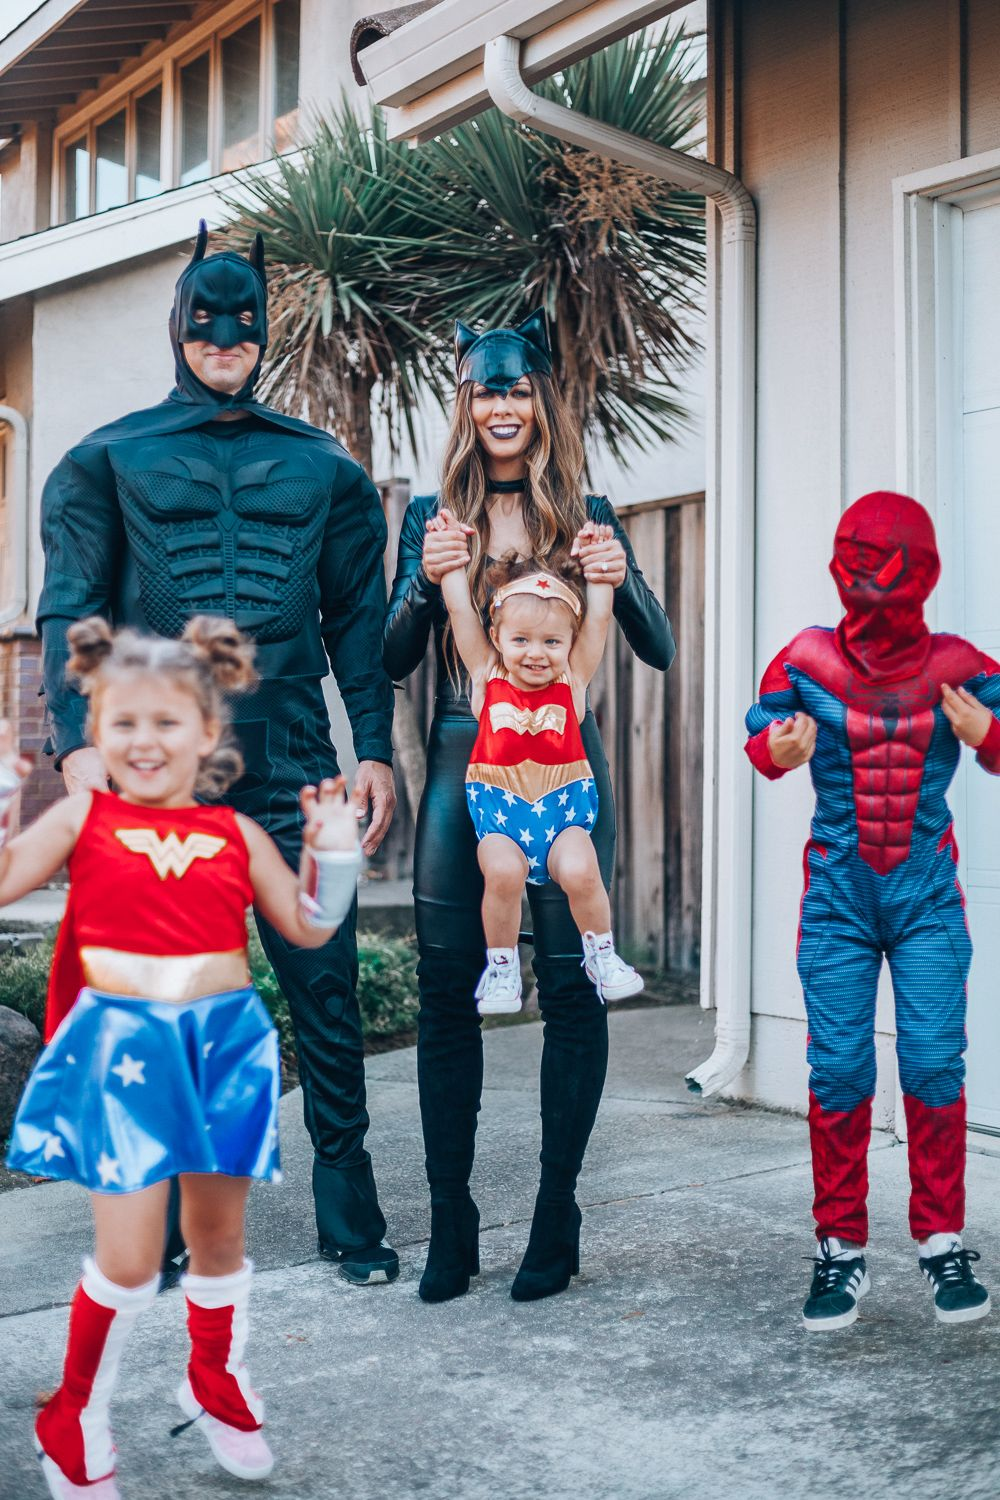 Halloween Costumes 2020 Heros Creative Family Halloween Costumes | The Girl in the Yellow Dress